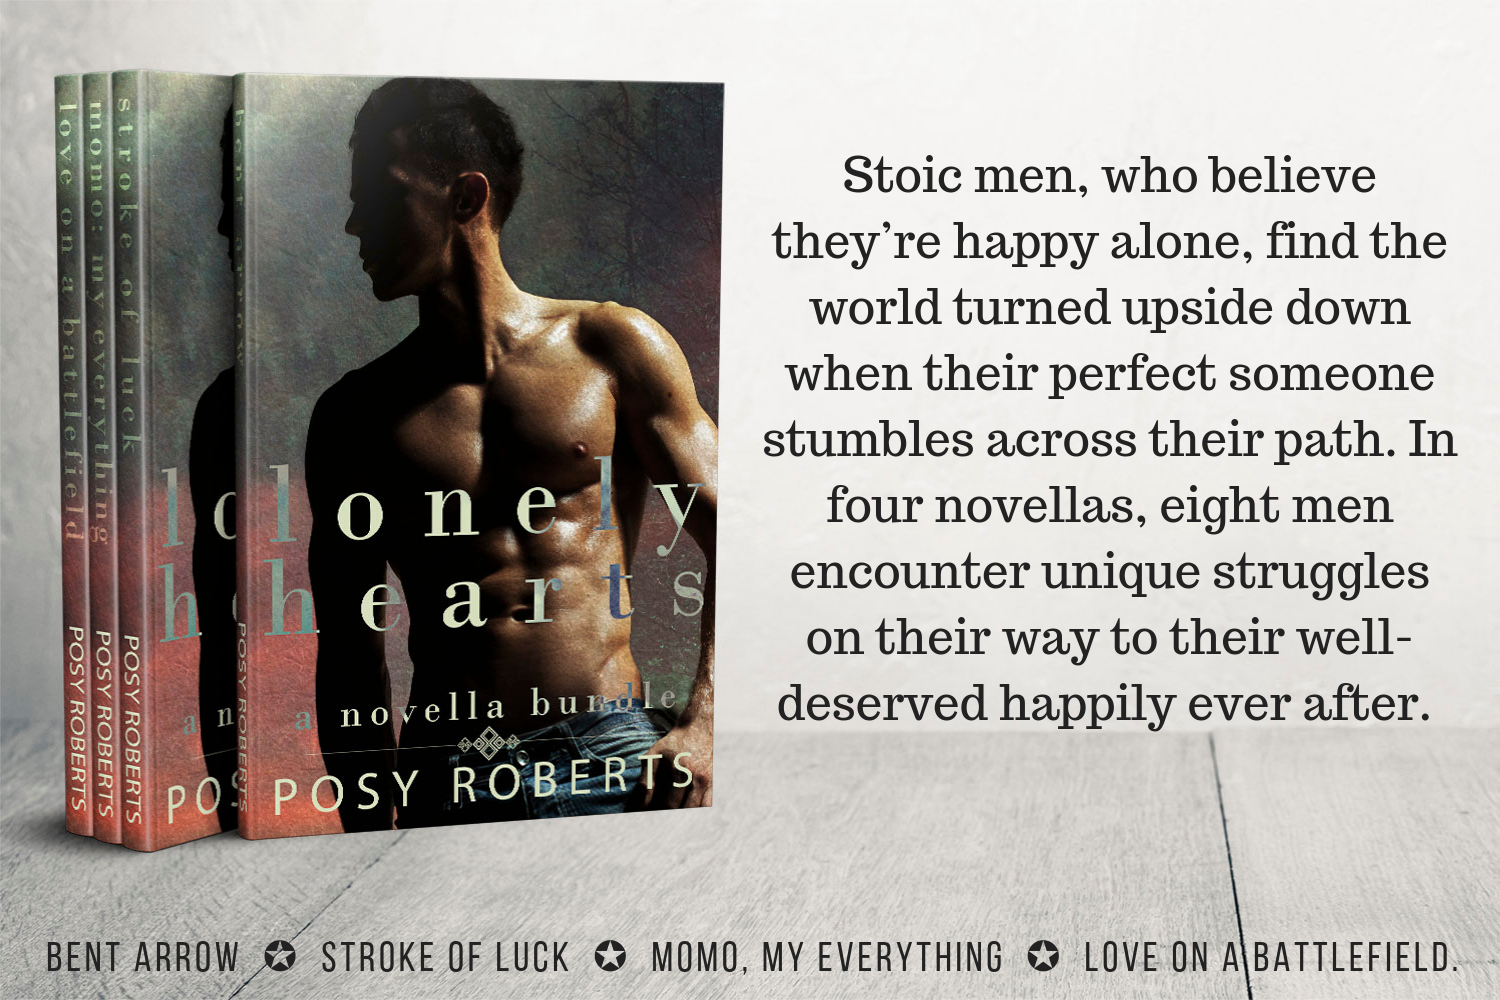 Stoic men, who believe they_re happy alone, find the world turned upside down when their perfect someone stumbles across their path. In four novellas, eight men encounter unique strugg